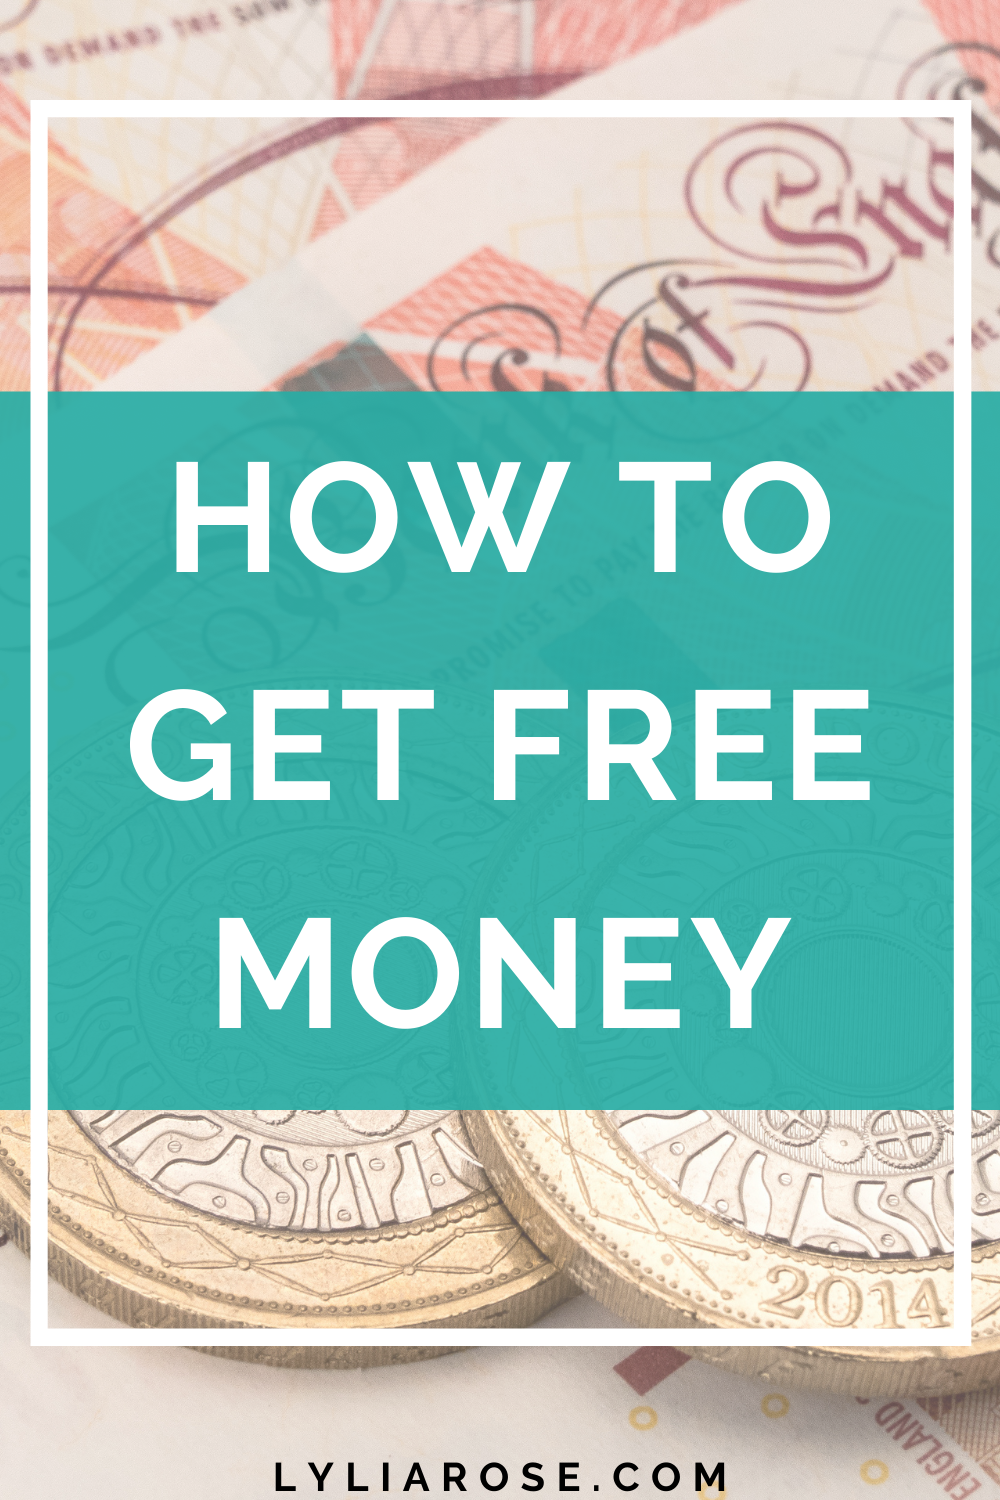 How to get free money UK